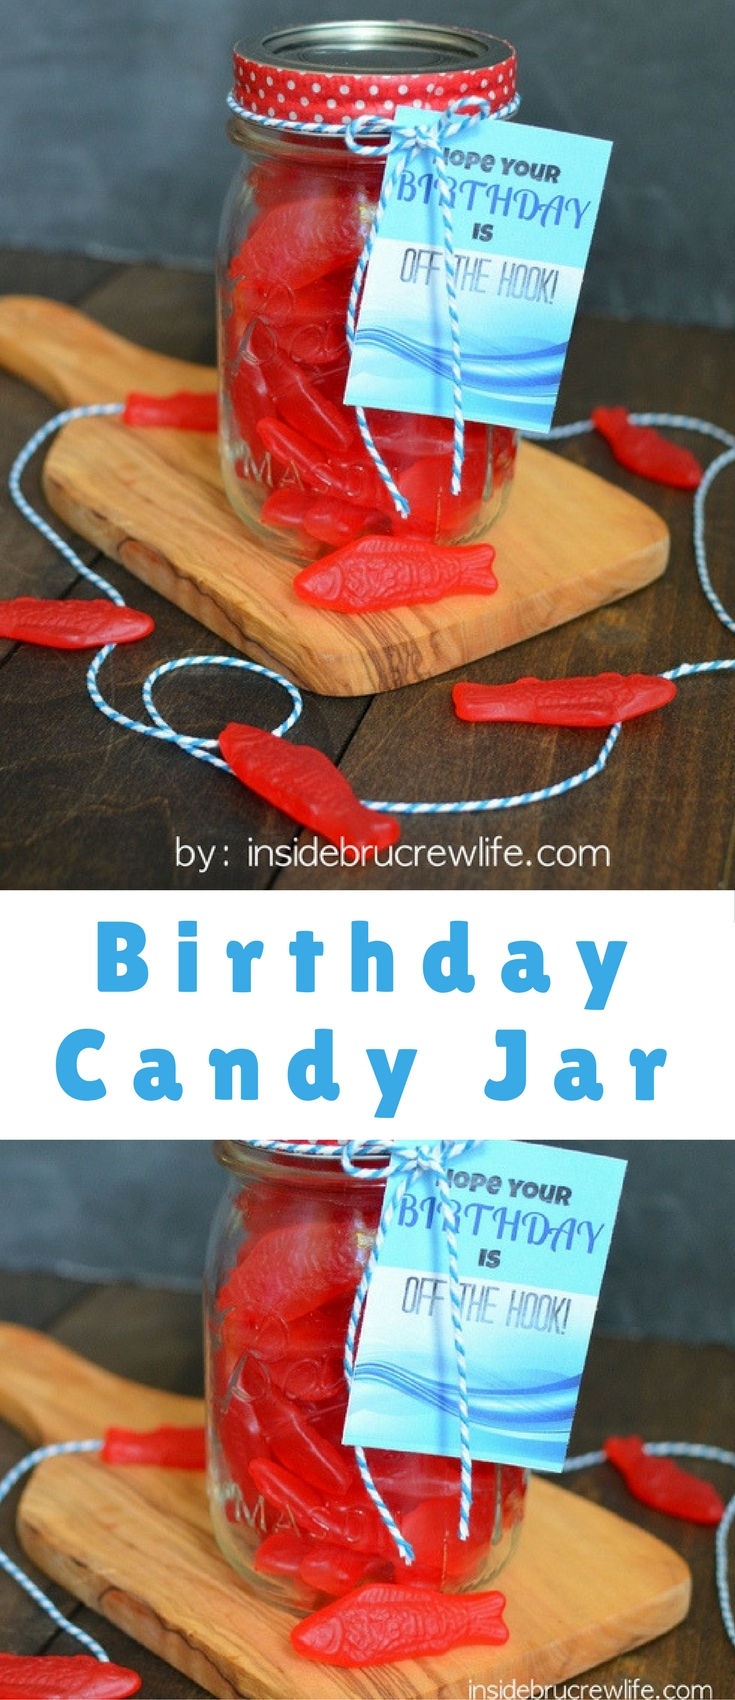 One way to show your love for a friend is to remember the little details such as what their favorite candy is. Remembering the small things about someone shows you noticed and you care. What better way to say Happy Birthday to someone than with one of their little favorites.